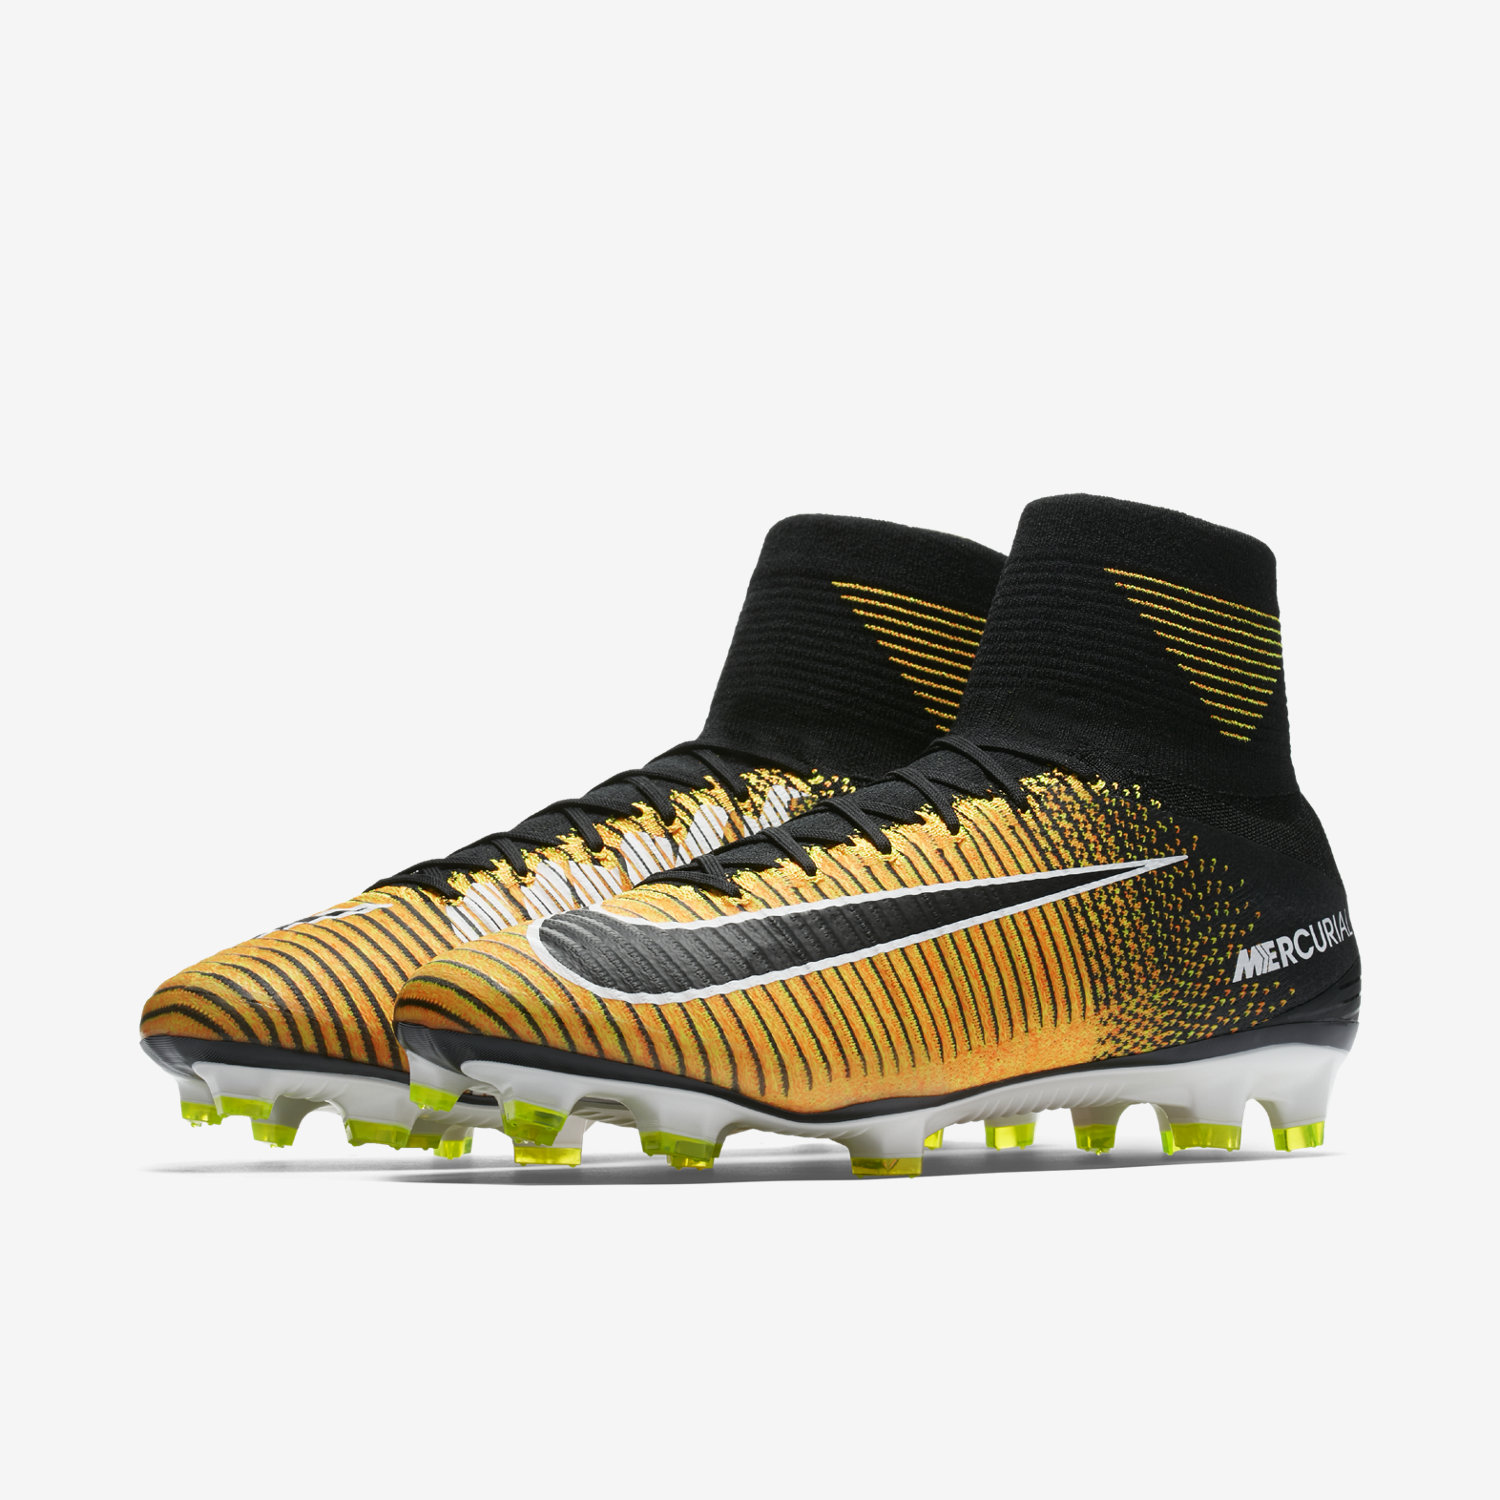 Nike Mercurial Superfly V Men's Firm Ground Soccer Cleat